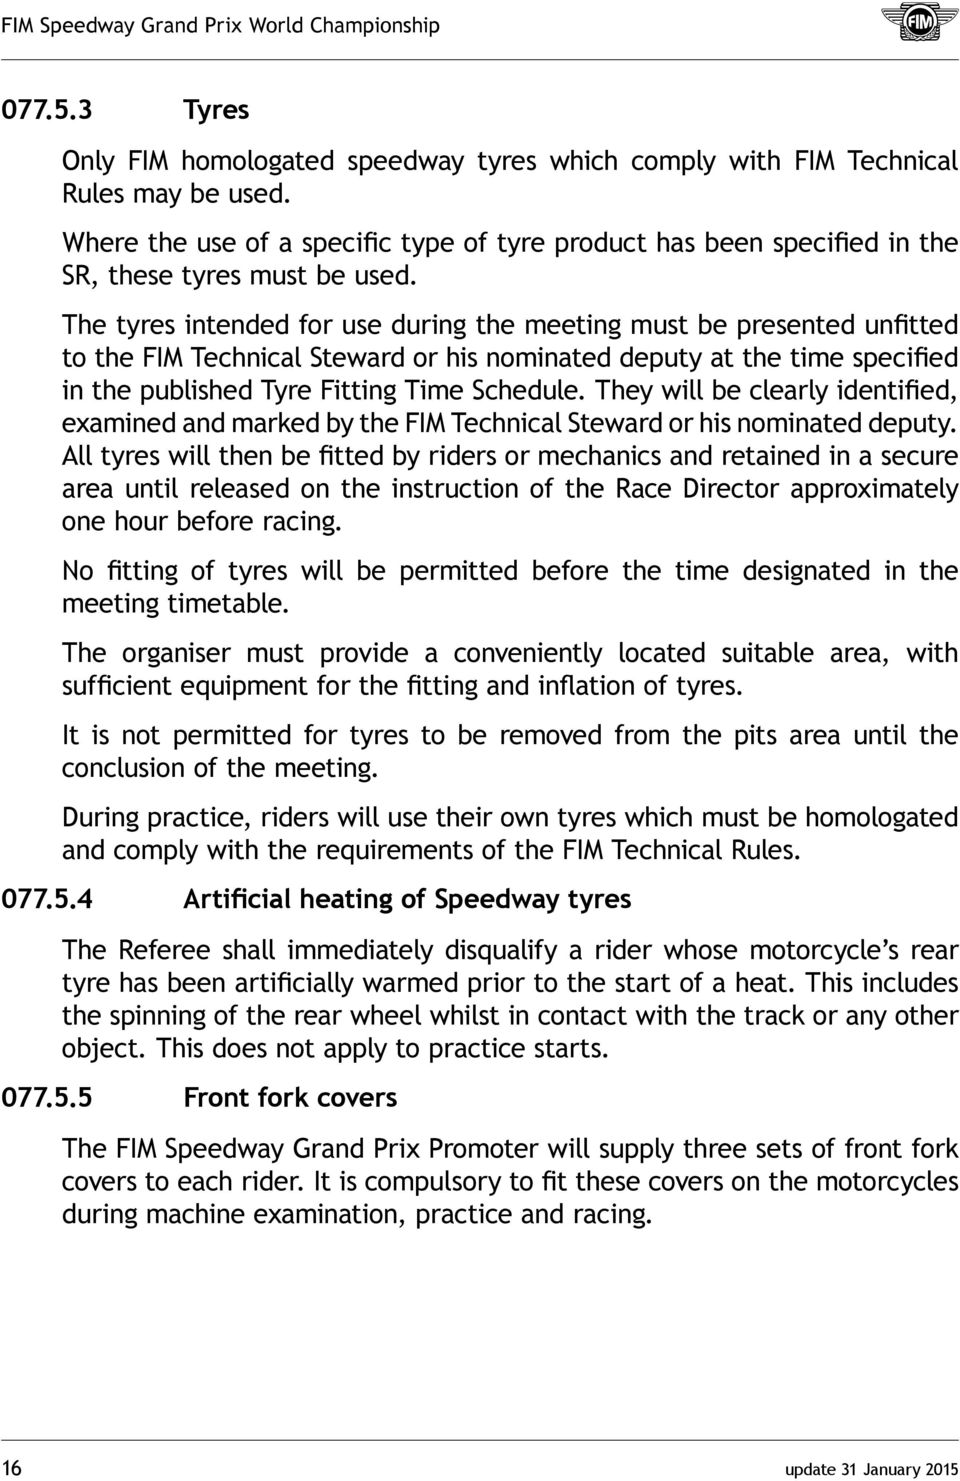 The tyres intended for use during the meeting must be presented unfitted to the FIM Technical Steward or his nominated deputy at the time specified in the published Tyre Fitting Time Schedule.